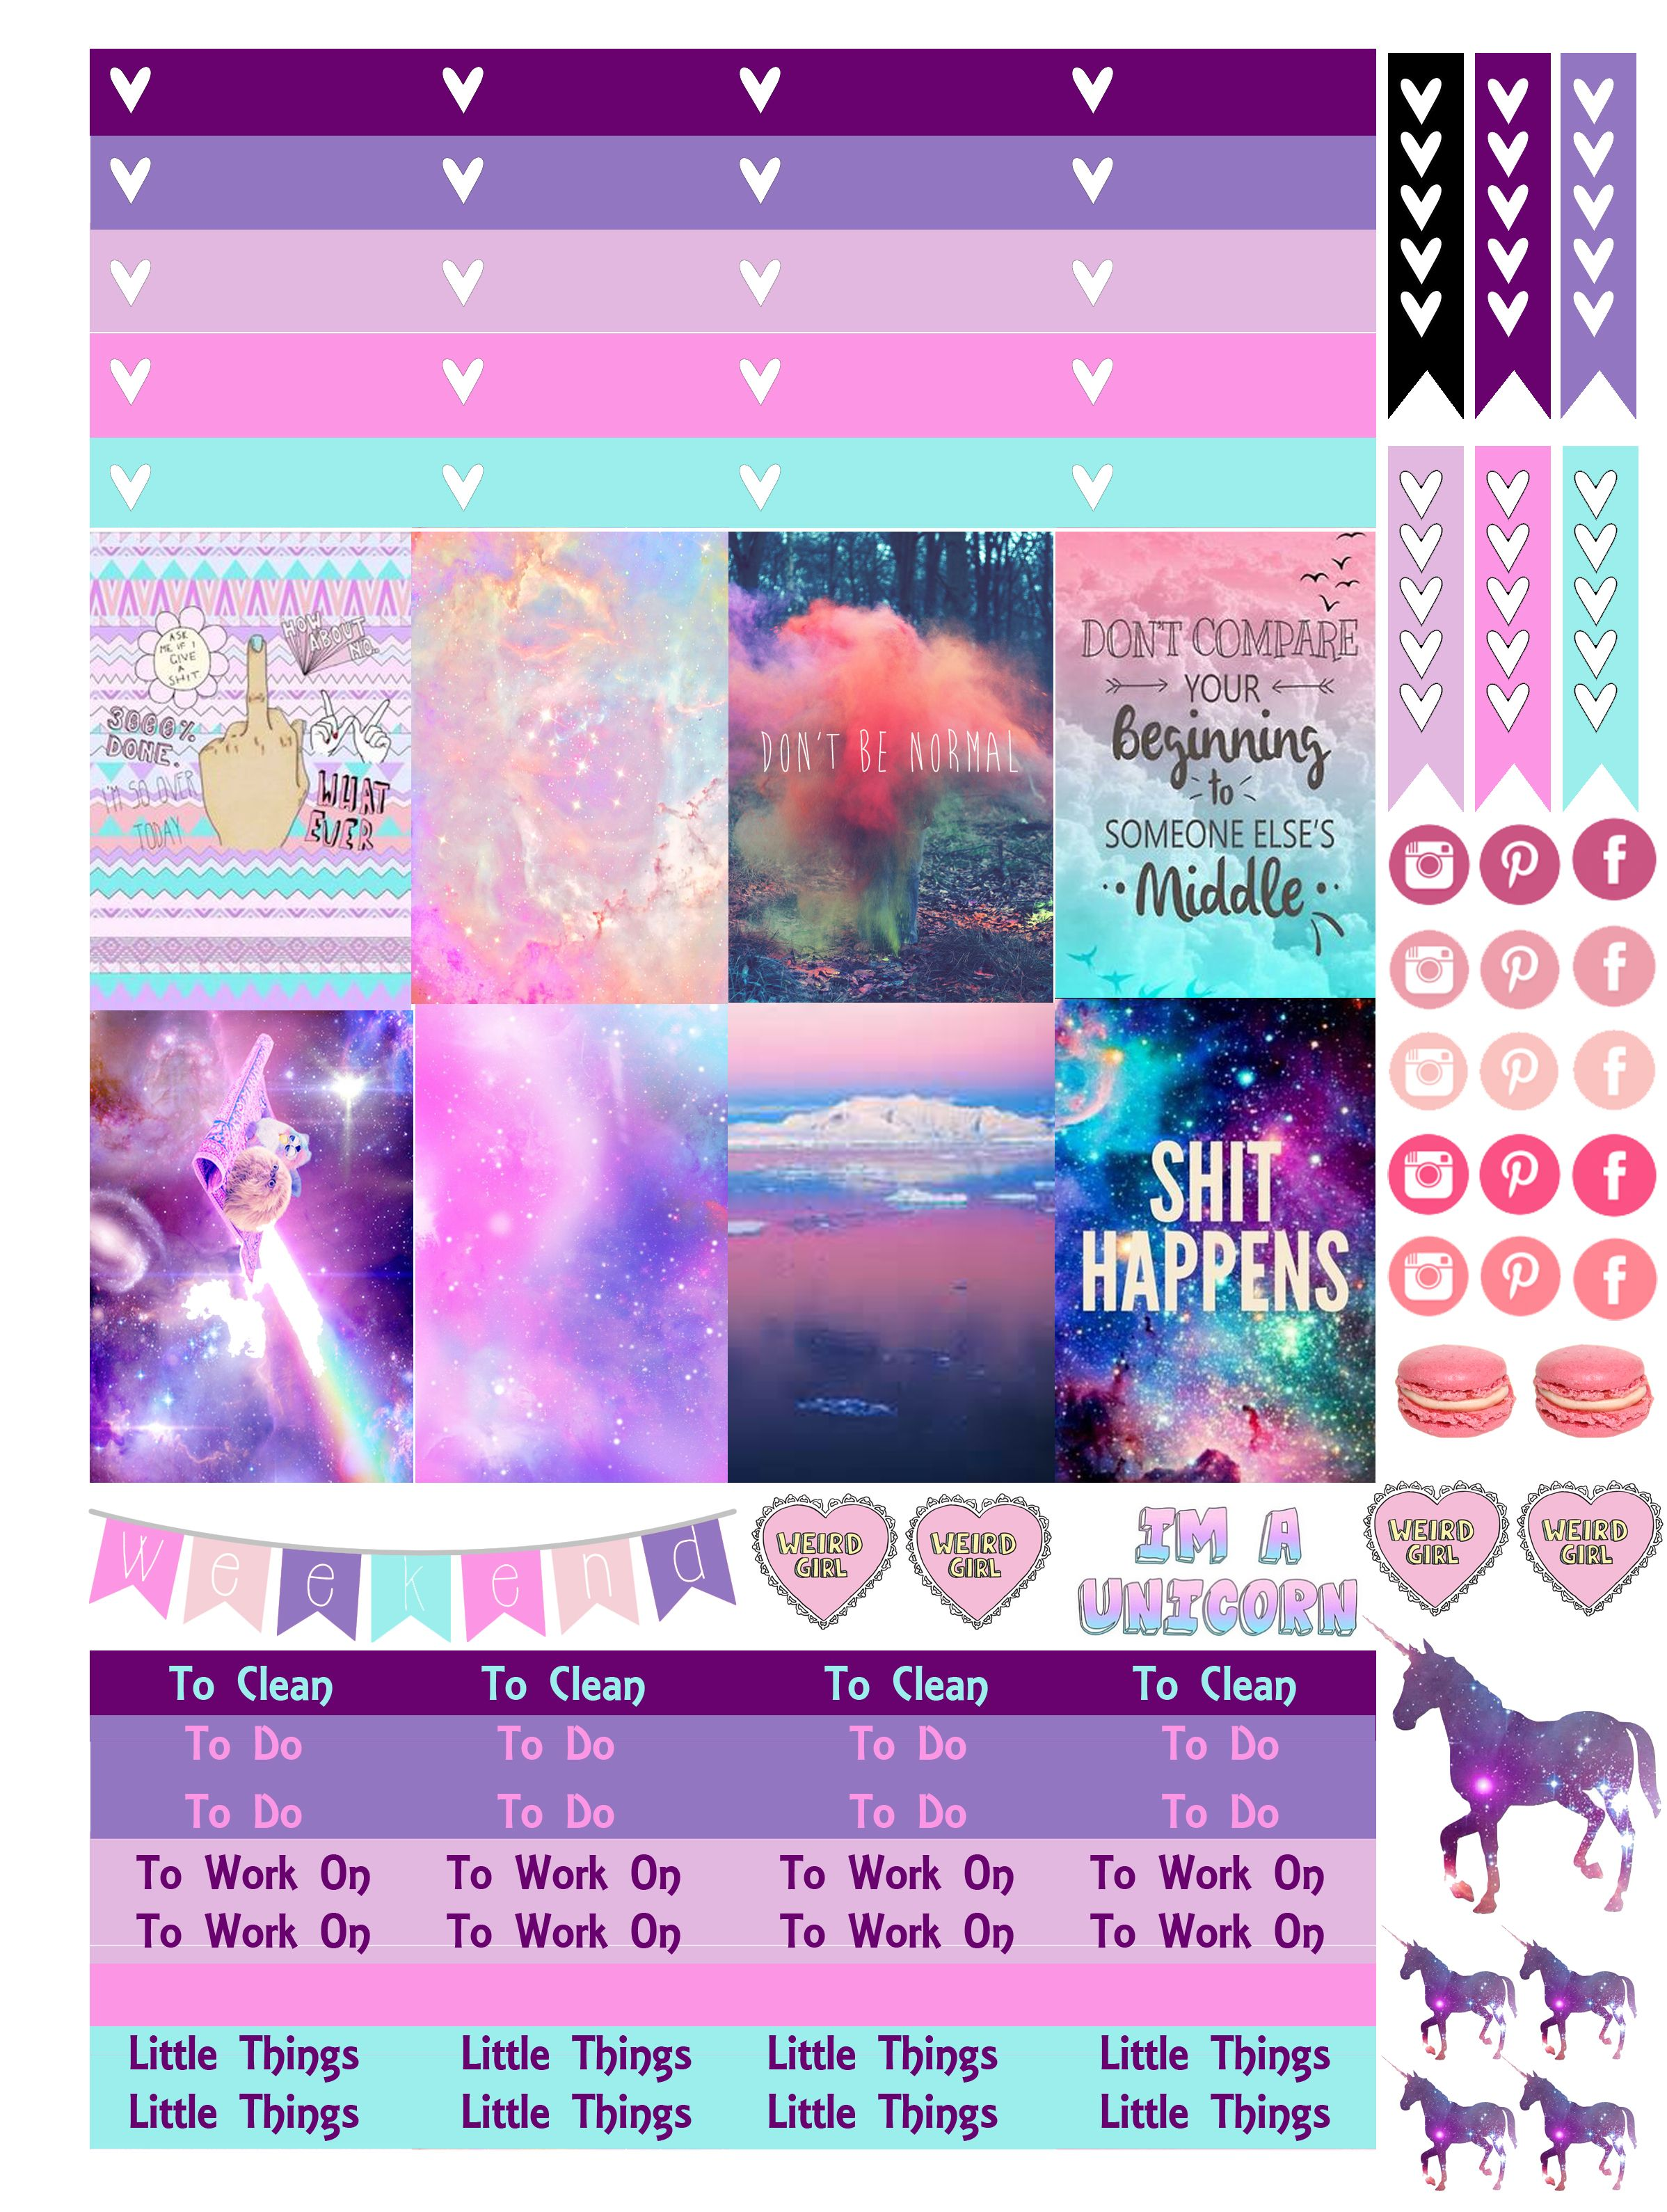 free thp the happy planner by mambi sticker free printable free thp the happy planner by mambi sticker free printable sticker layout may